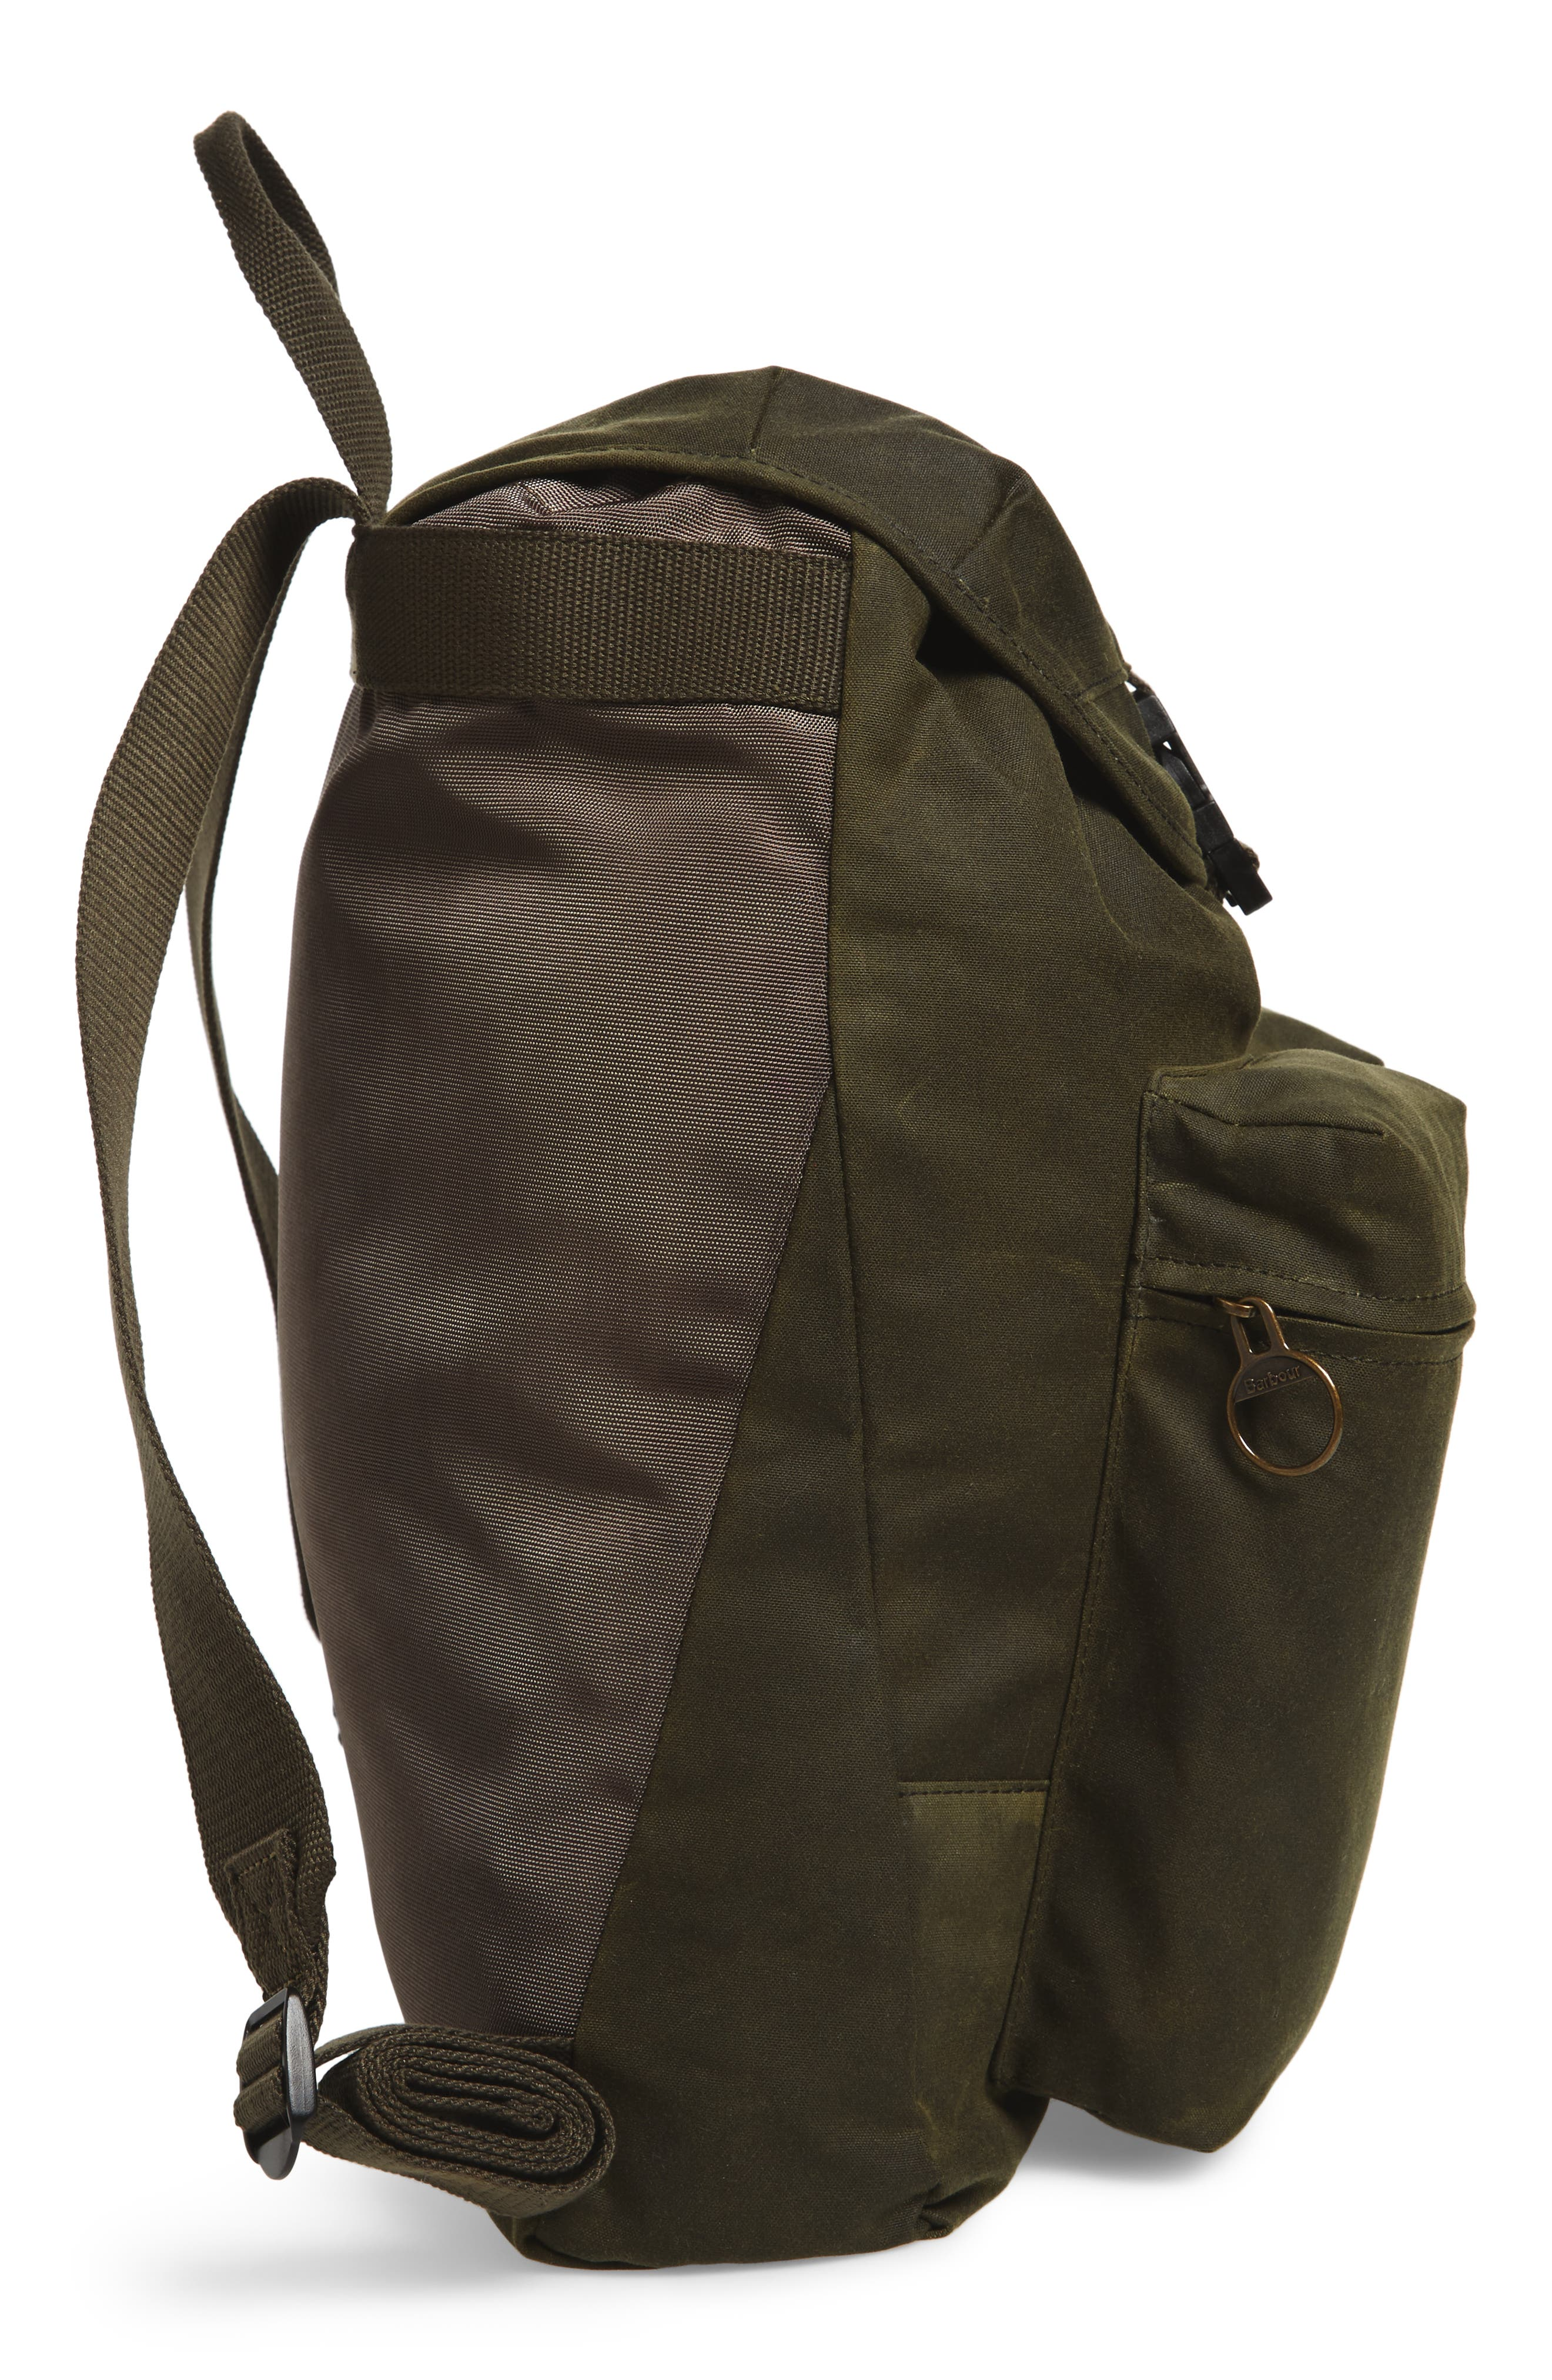 Archive Backpack,                             Alternate thumbnail 5, color,                             ARCHIVE OLIVE